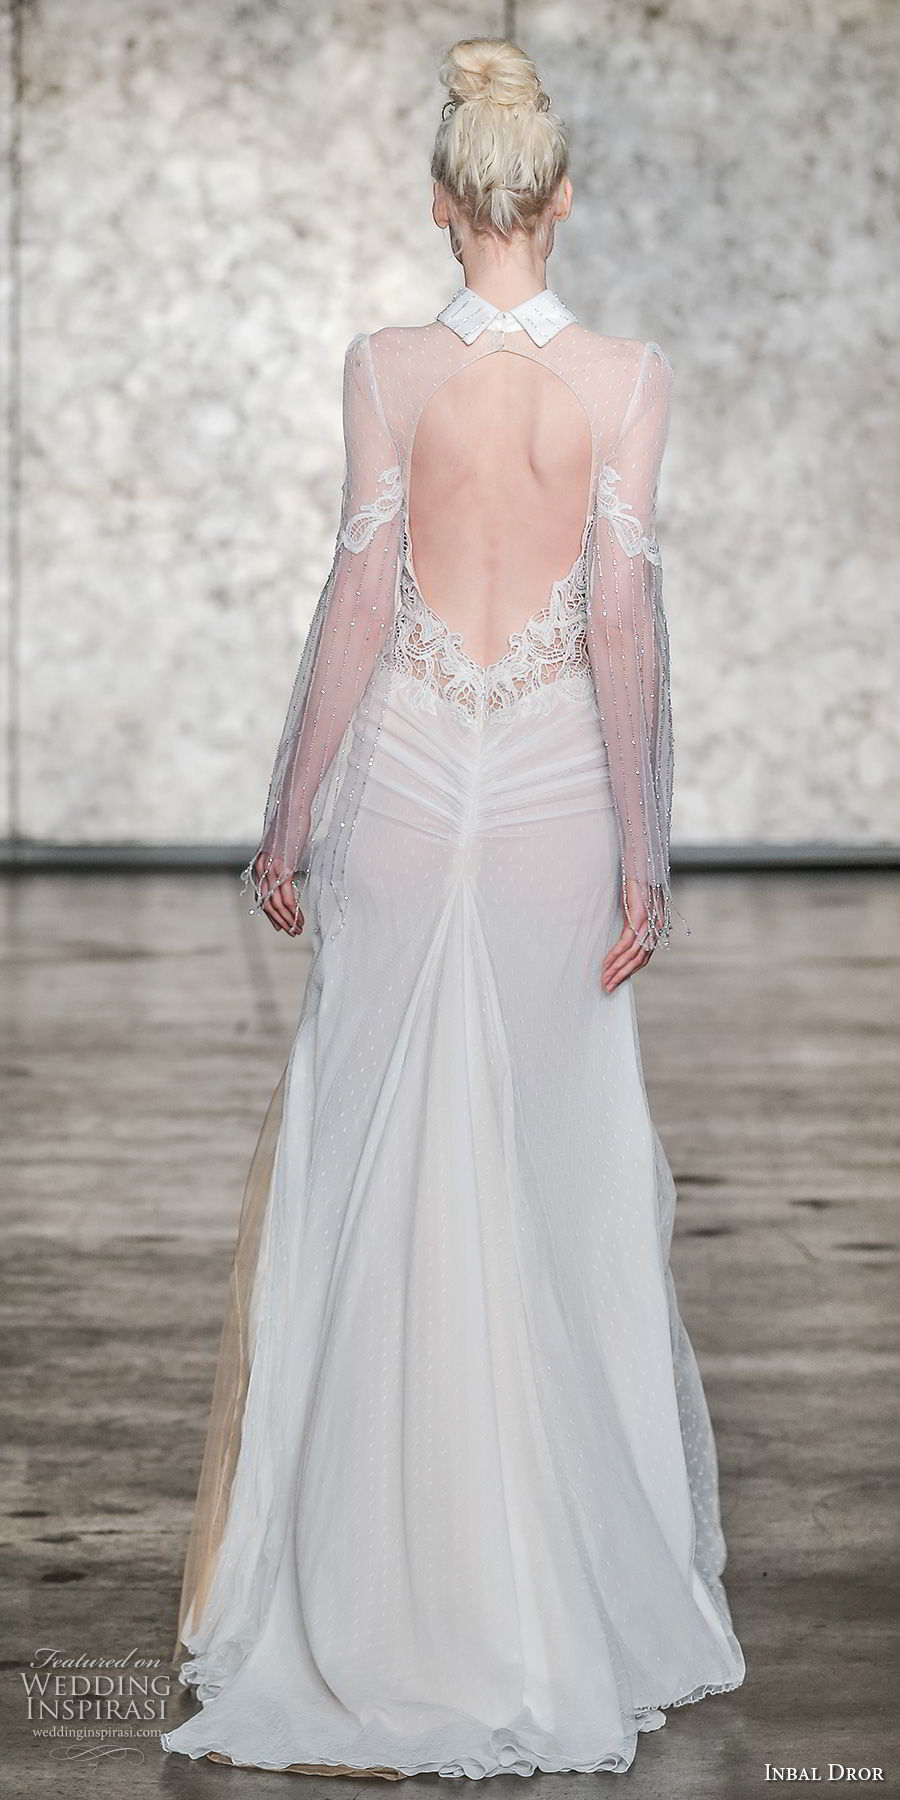 inbal dror fall 2018 bridal long hanging sleeves collar neck heavily embellished bodice elegant modified a line wedding dress keyhole back sweep train (03) bv